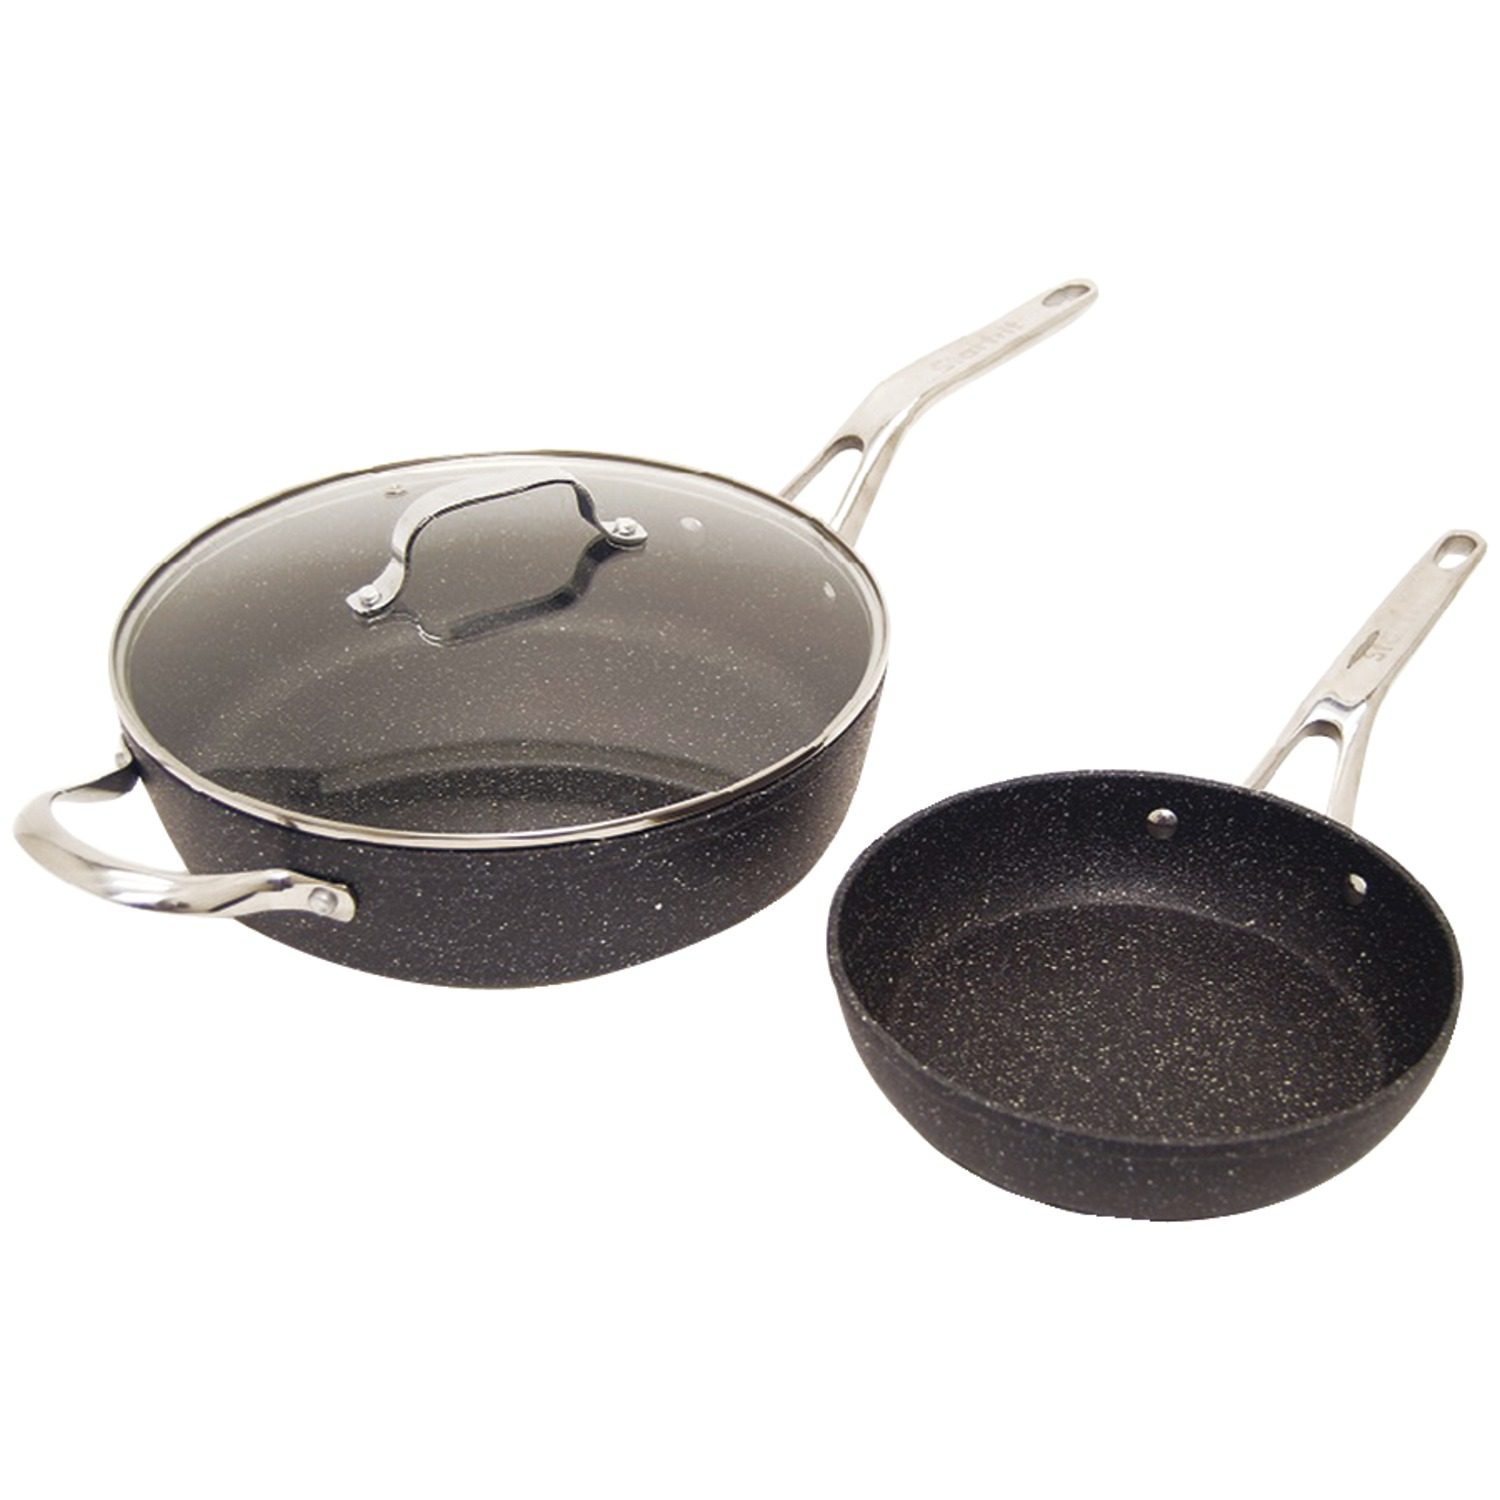 THE ROCK by Starfrit 060337-002-0000 The Rock By Starfrit 3-piece Cookware Set With Riveted Cast Stainless... by THE ROCK by Starfrit